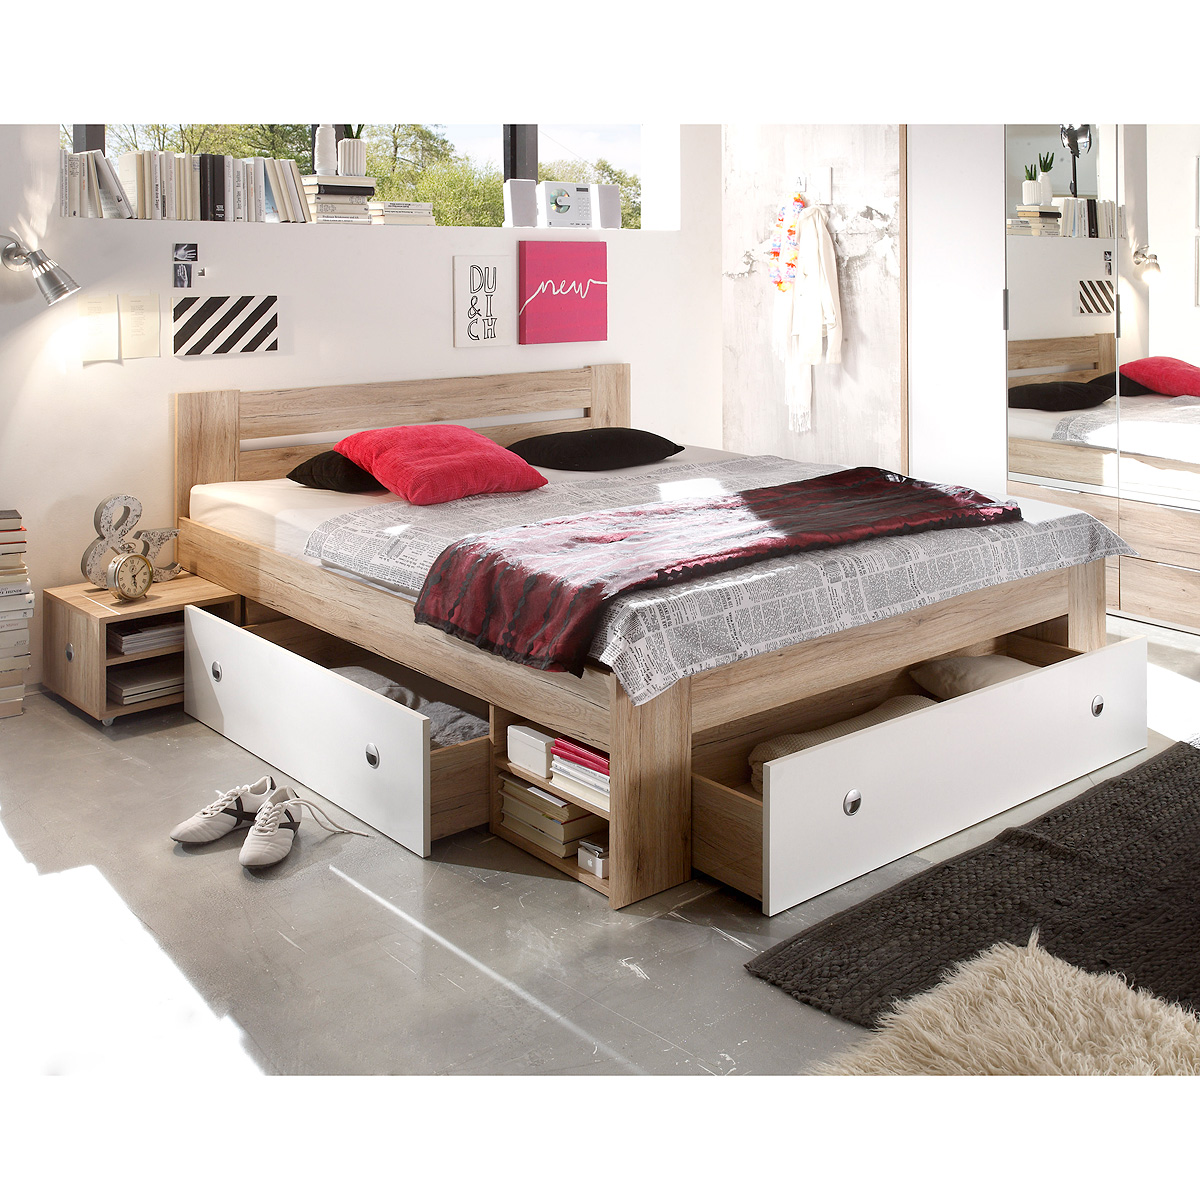 bett stefan funktionsbett schlafzimmerbett in san remo eiche wei 140x200 ebay. Black Bedroom Furniture Sets. Home Design Ideas